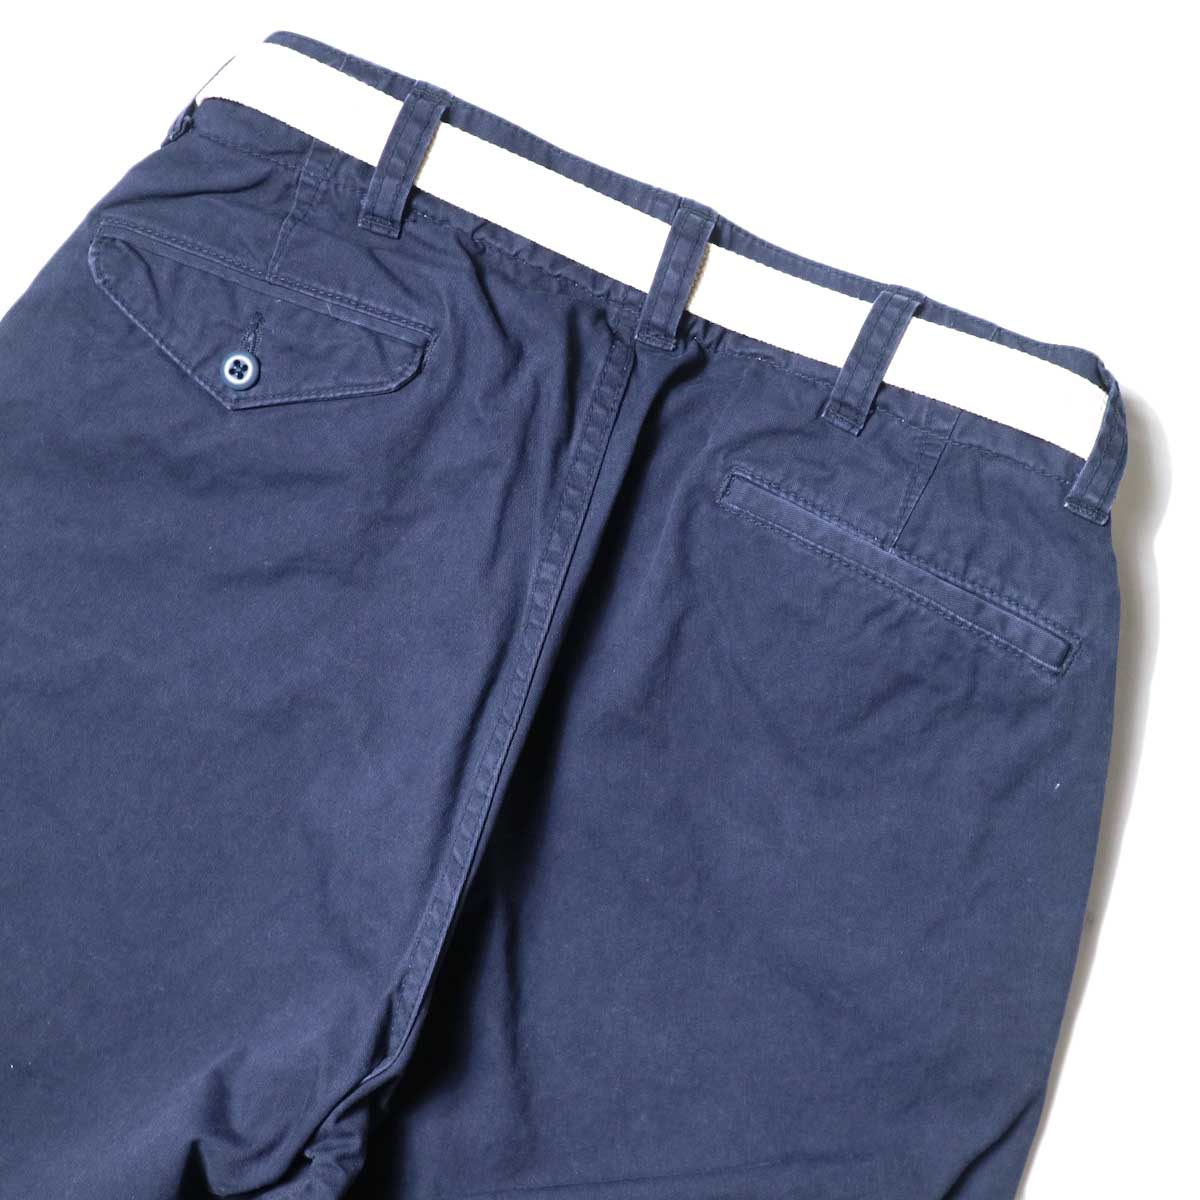 MASTER&Co. / ONE WASHED DENIM LONG PANTS 背面アップ